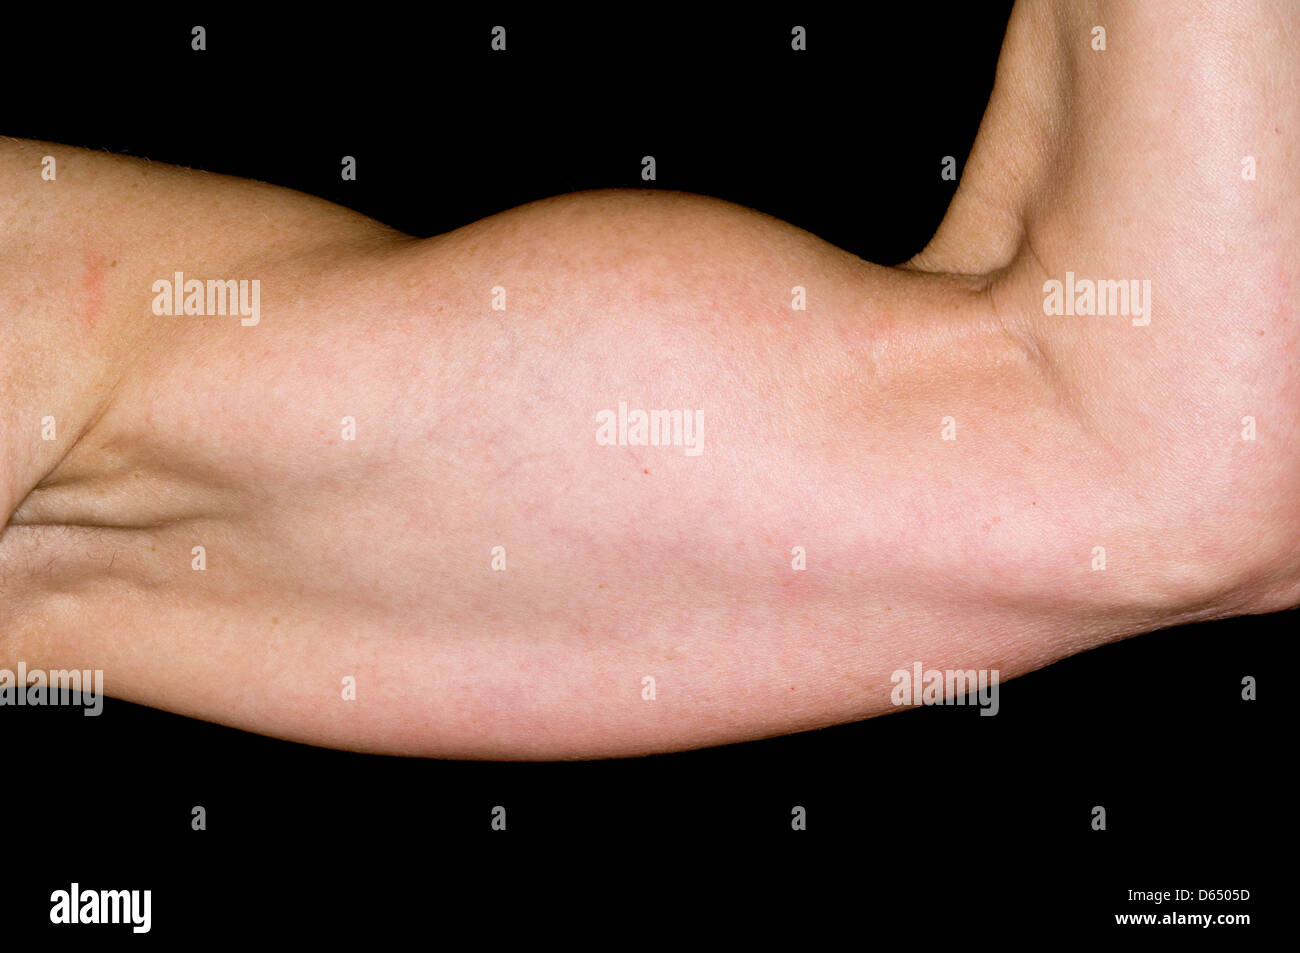 Biceps Tendon Stockfotos & Biceps Tendon Bilder - Alamy